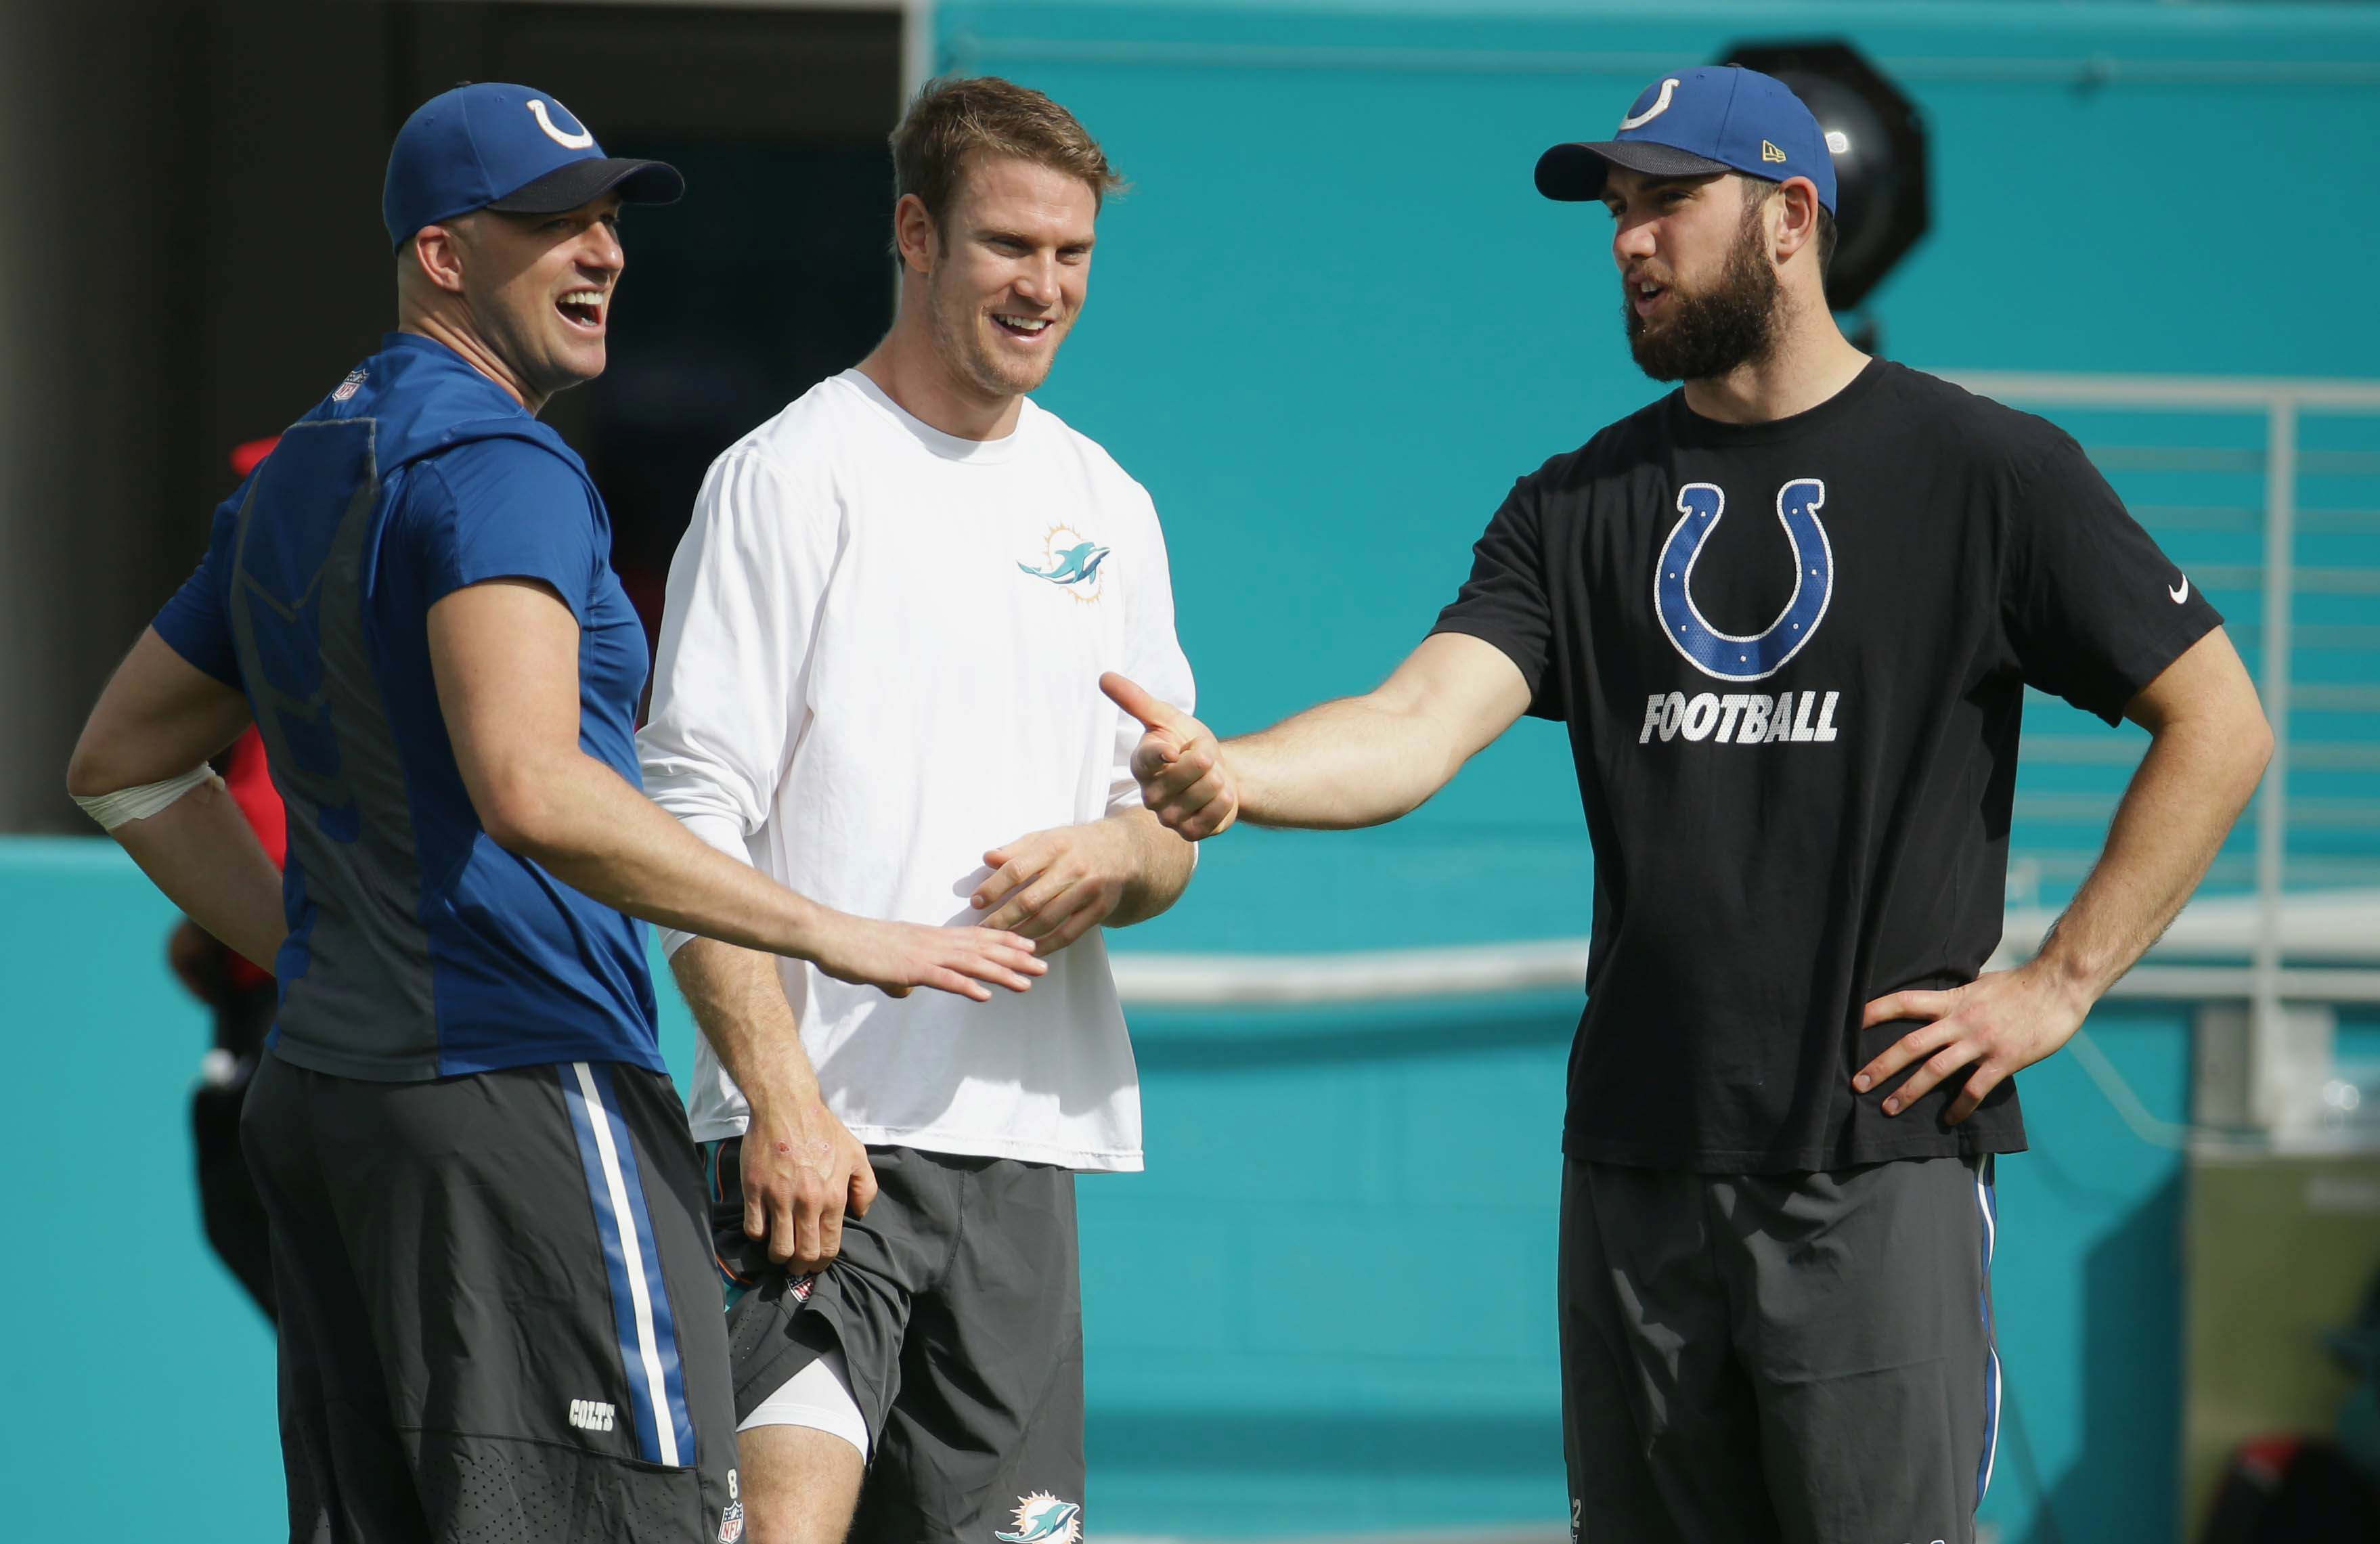 Indianapolis Colts quarterbacks Matt Hasselbeck, left  and Andrew Luck, right, talk to Miami Dolphins quarterback Ryan Tannehill before an NFL football game, Sunday, Dec. 27, 2015, in Miami Gardens, Fla.  (AP Photo/Lynne Sladky)